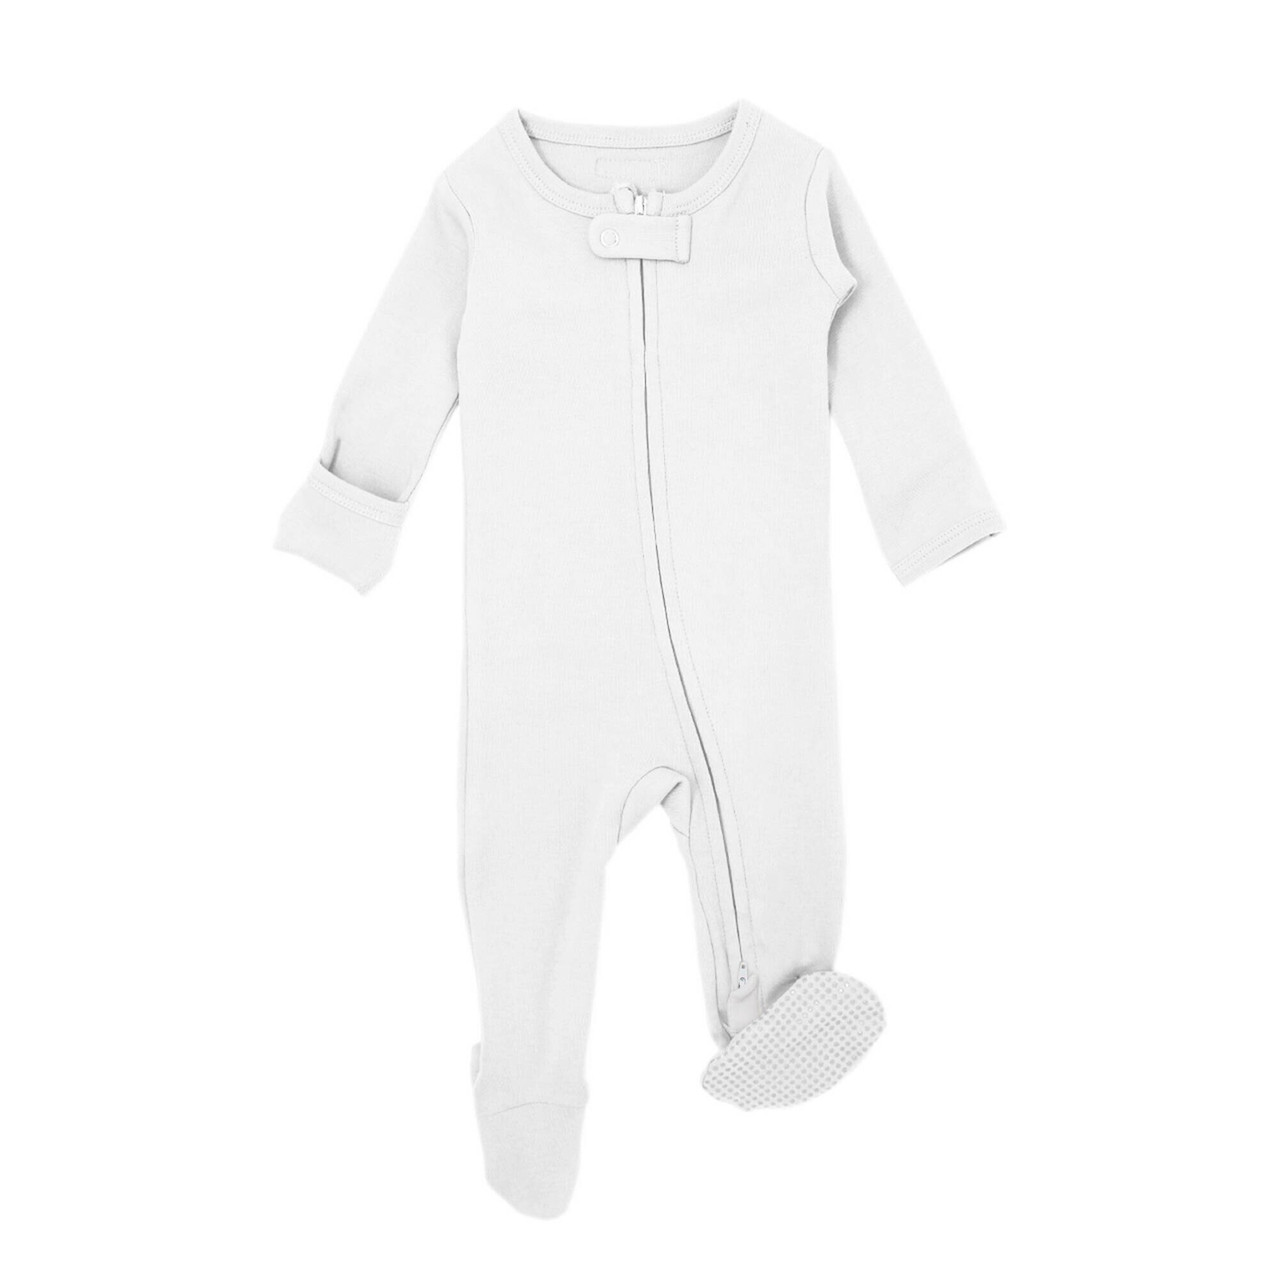 Organic Zipper Jumpsuit in White, Flat